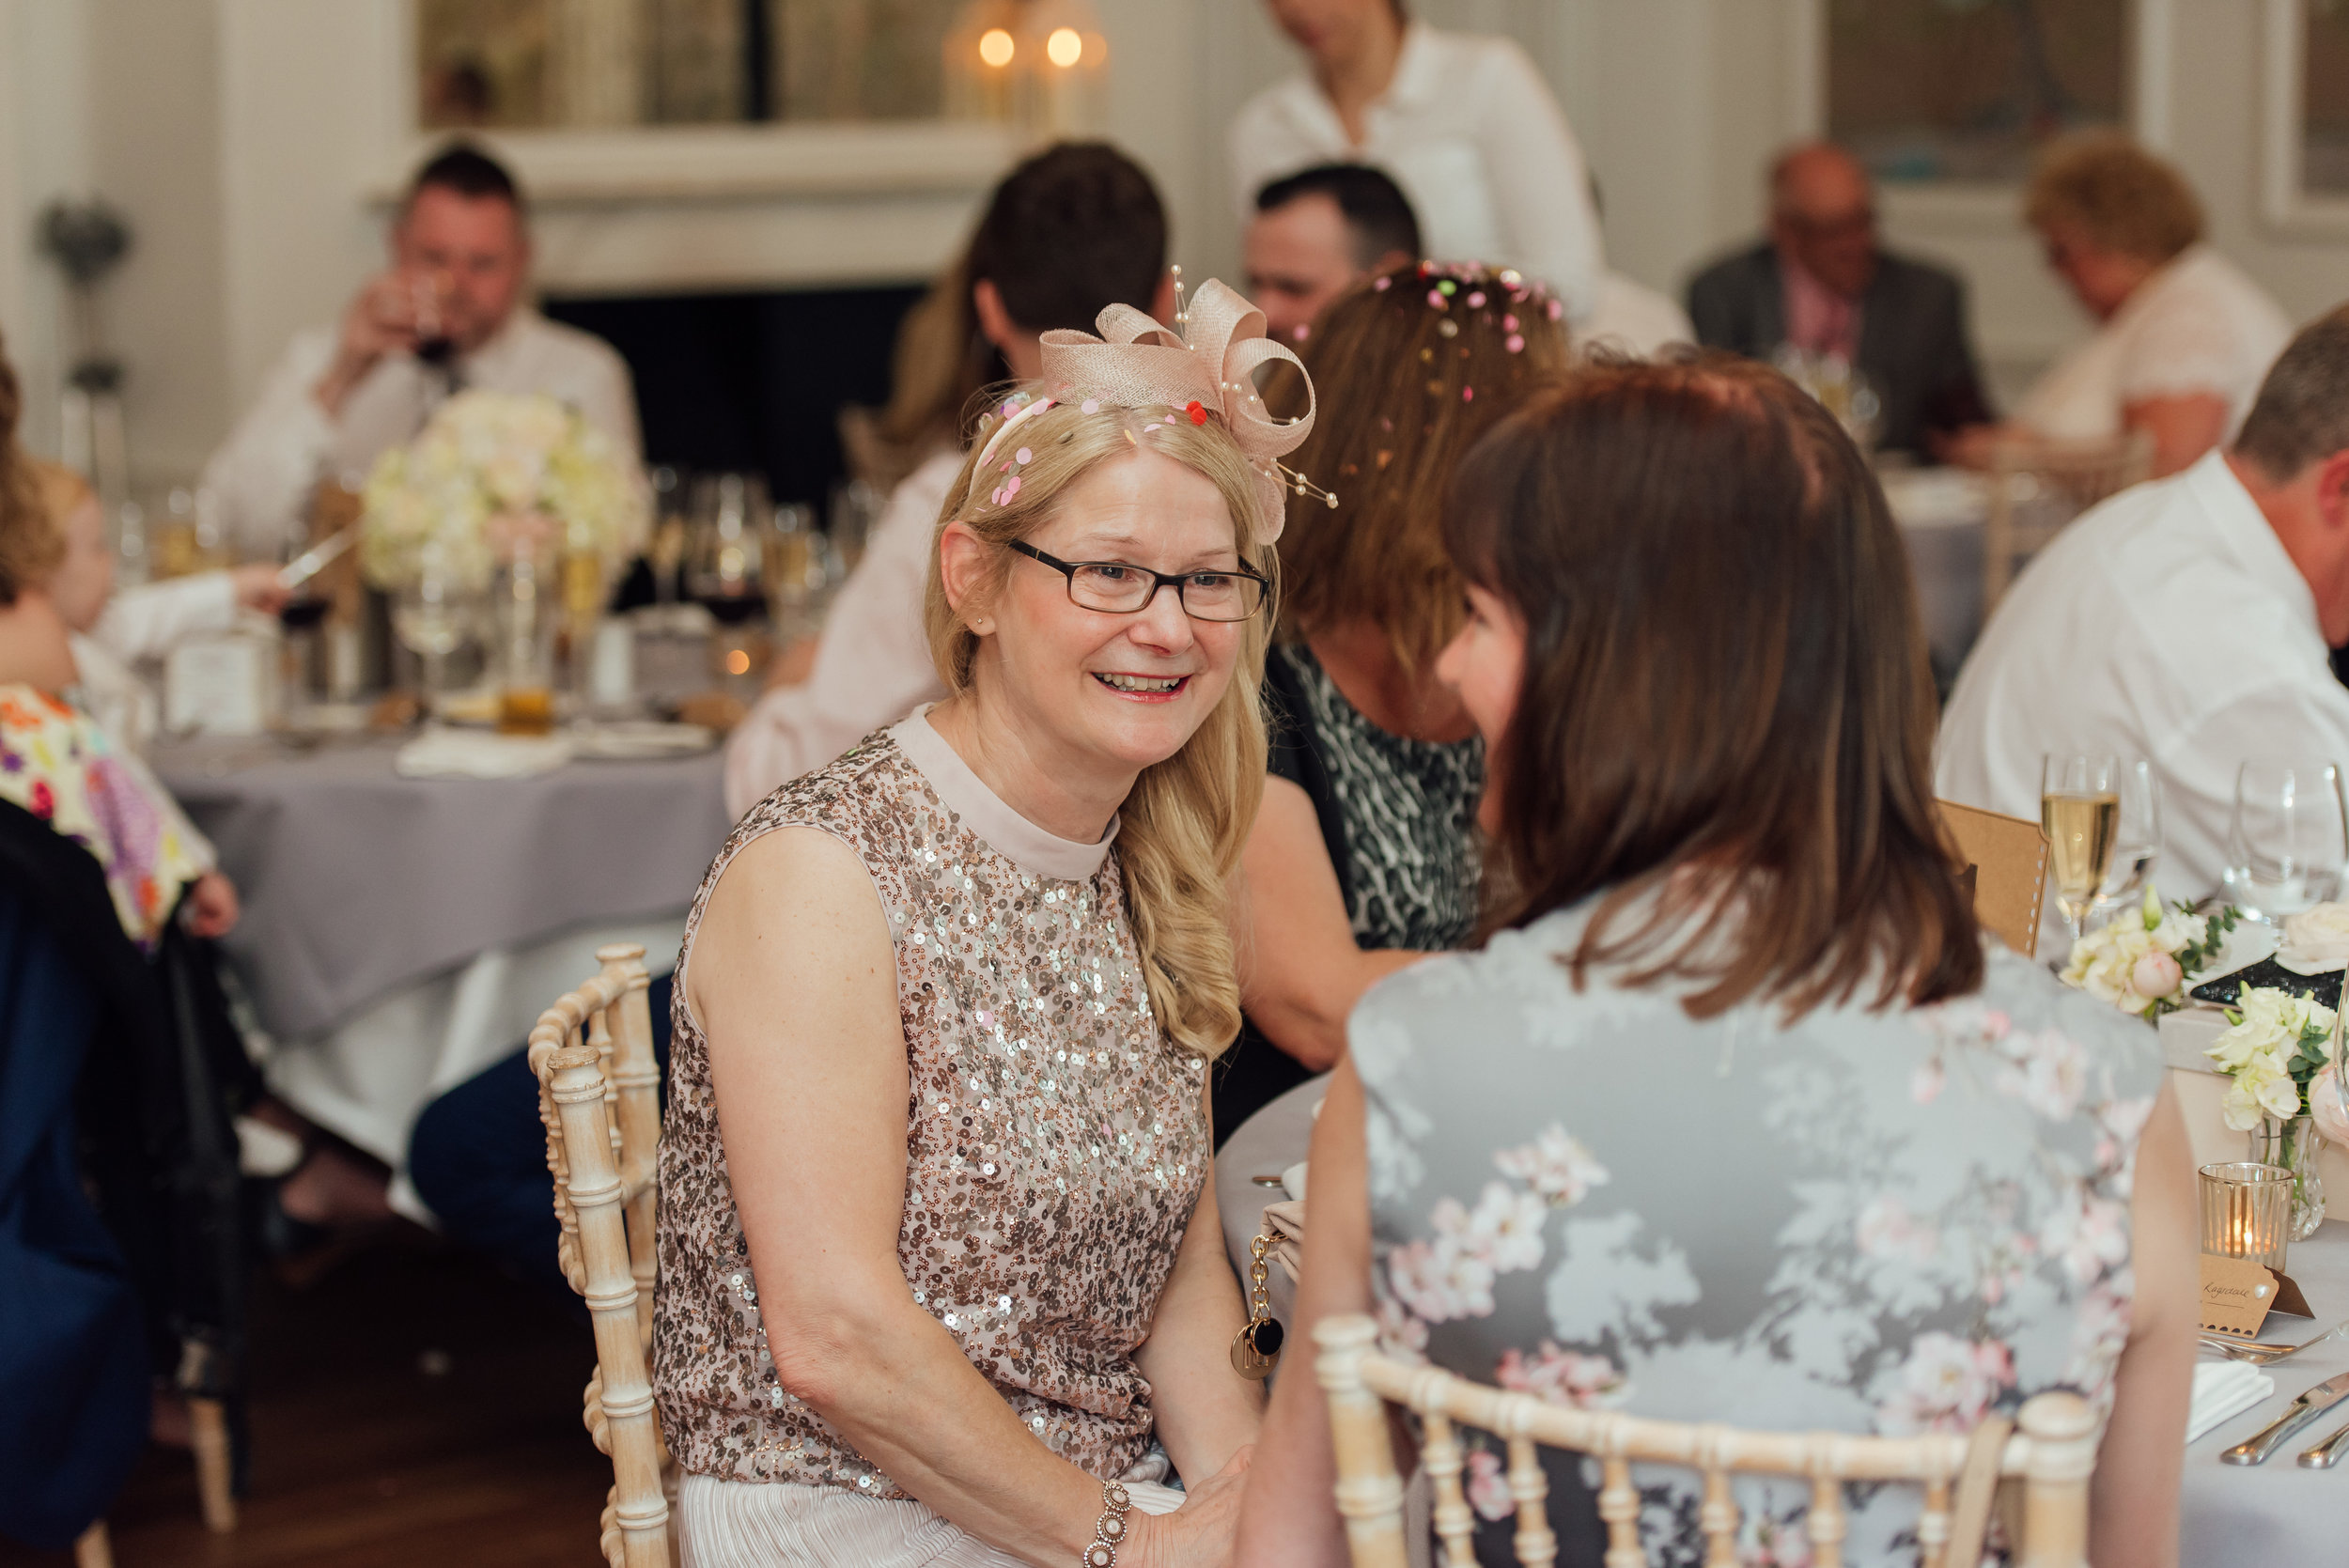 The George in Rye wedding by Amy James Photography - Wedding photographer Hampshire Surrey and Berkshire - documentary wedding photographer - fun wedding photos